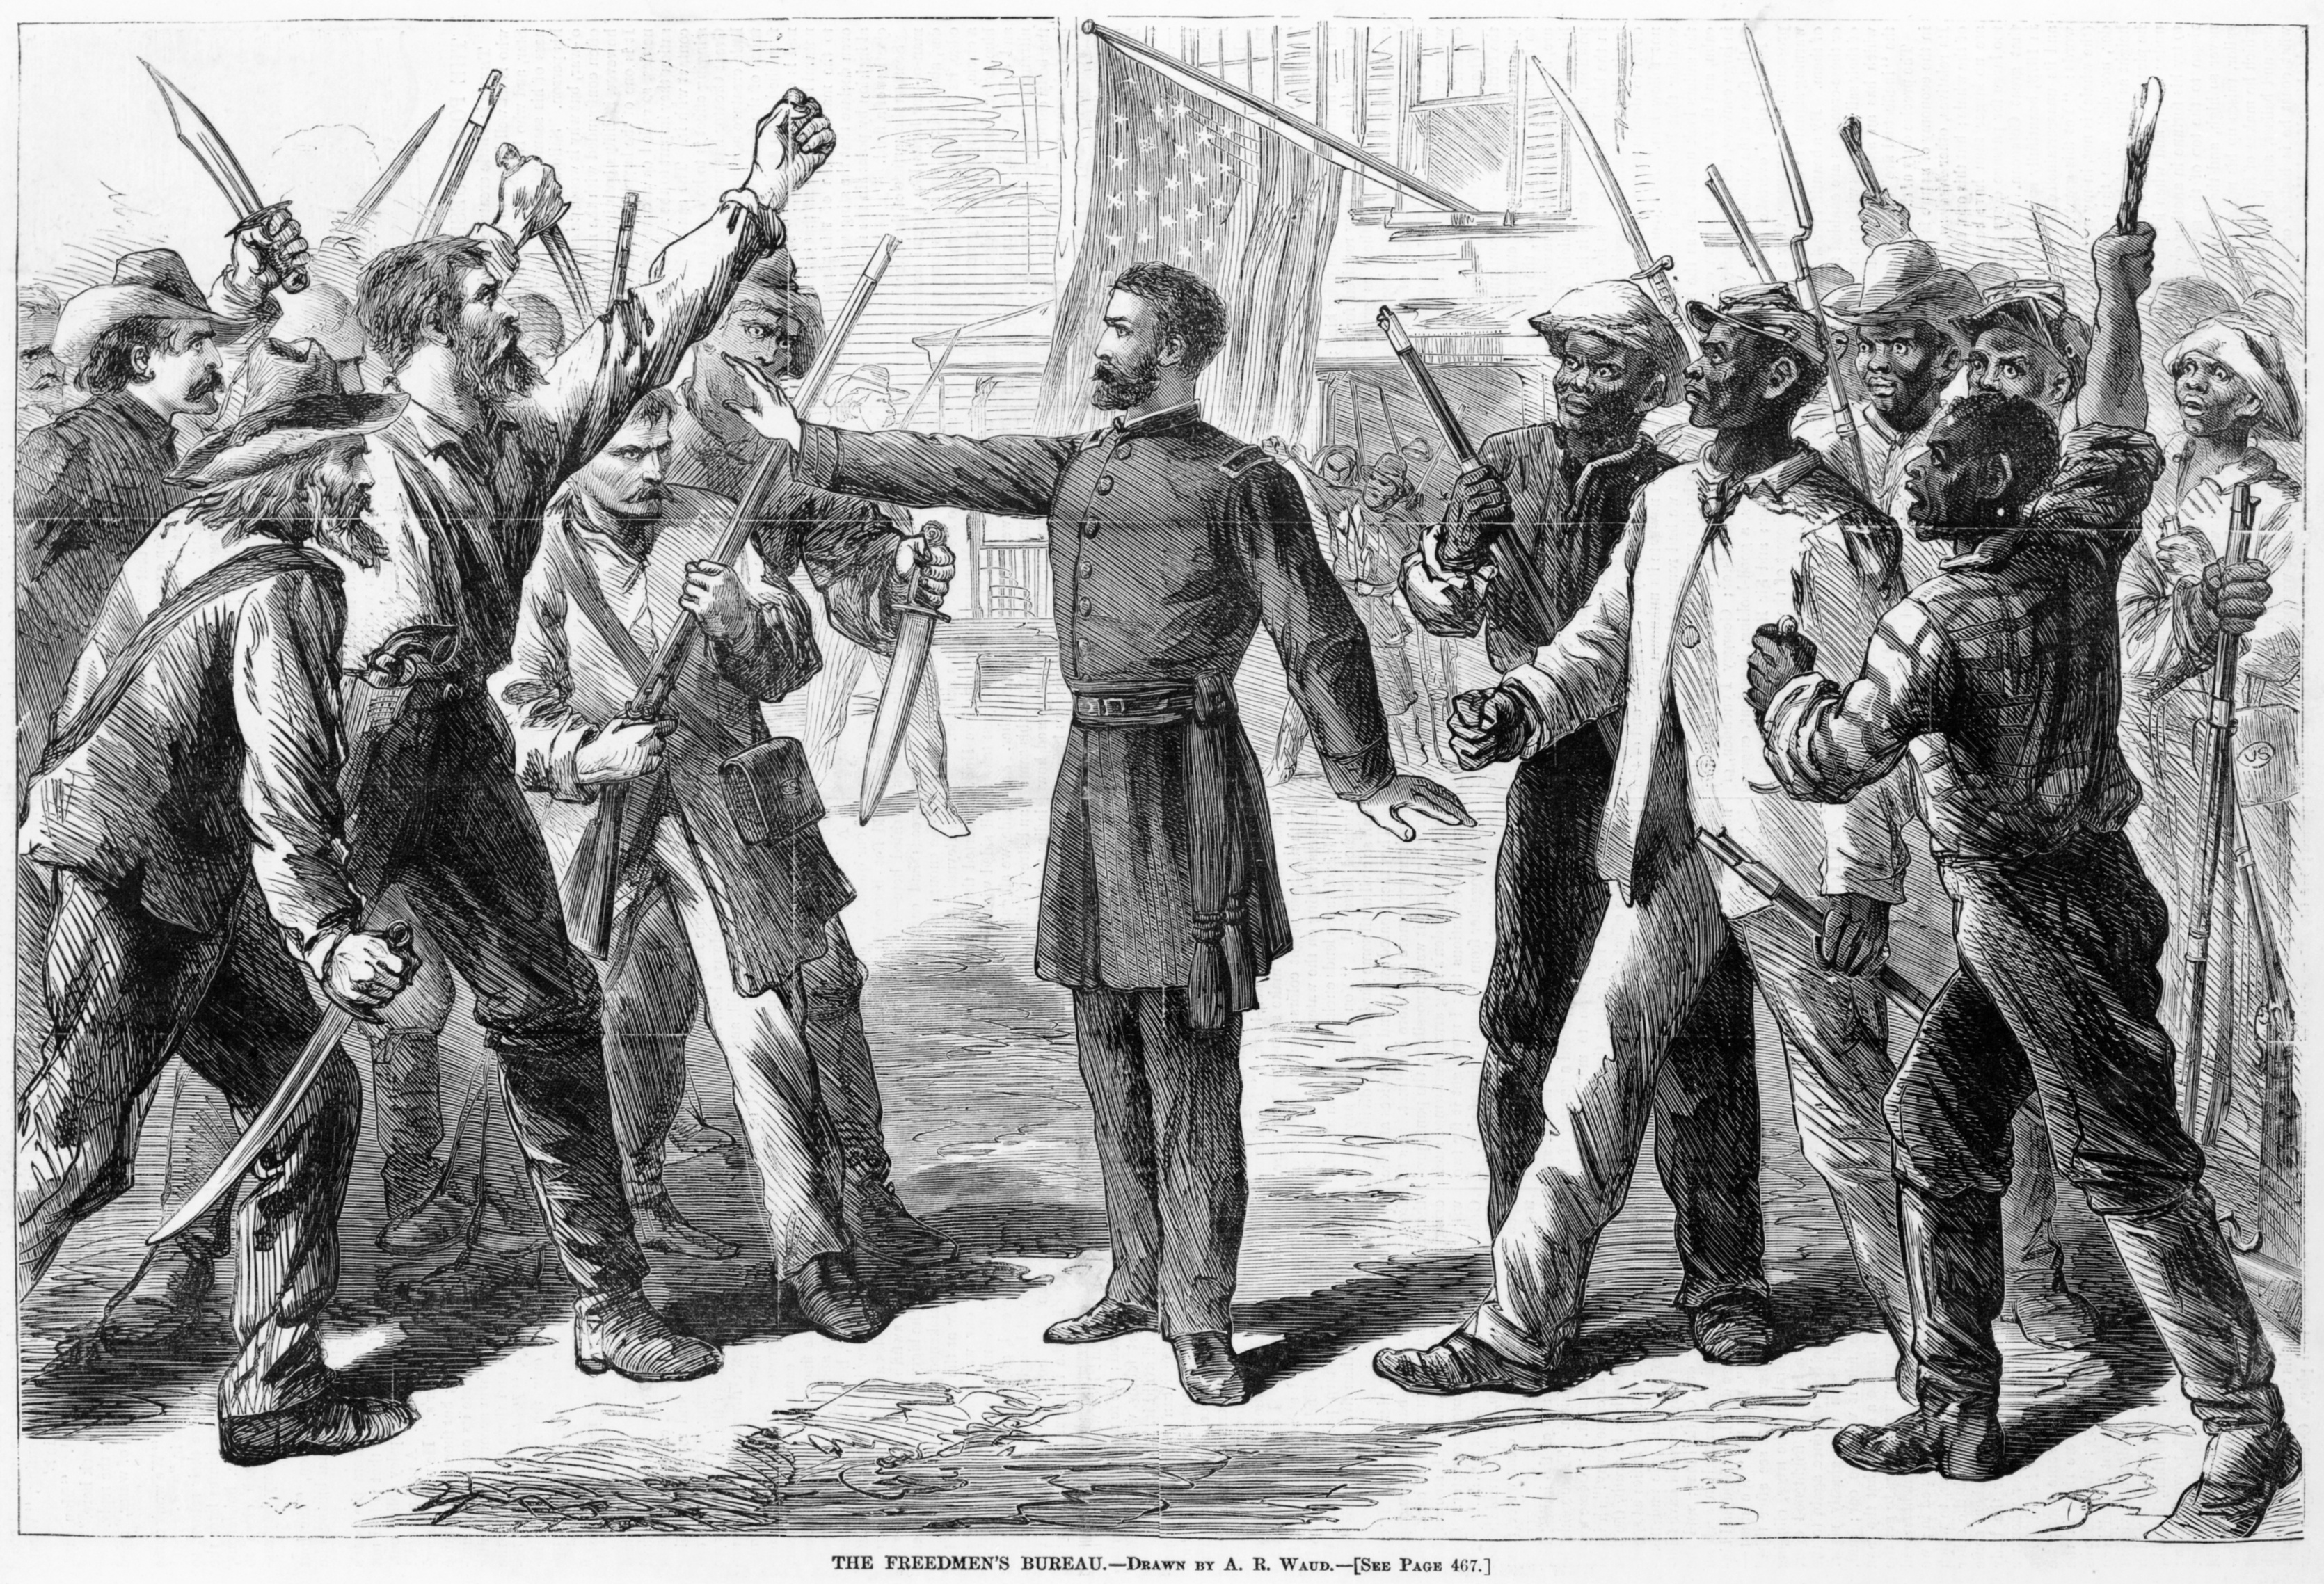 was reconstruction a success or failure for the nation as a whole a bureau agent stands between armed groups of southern whites and dmen in this 1868 picture